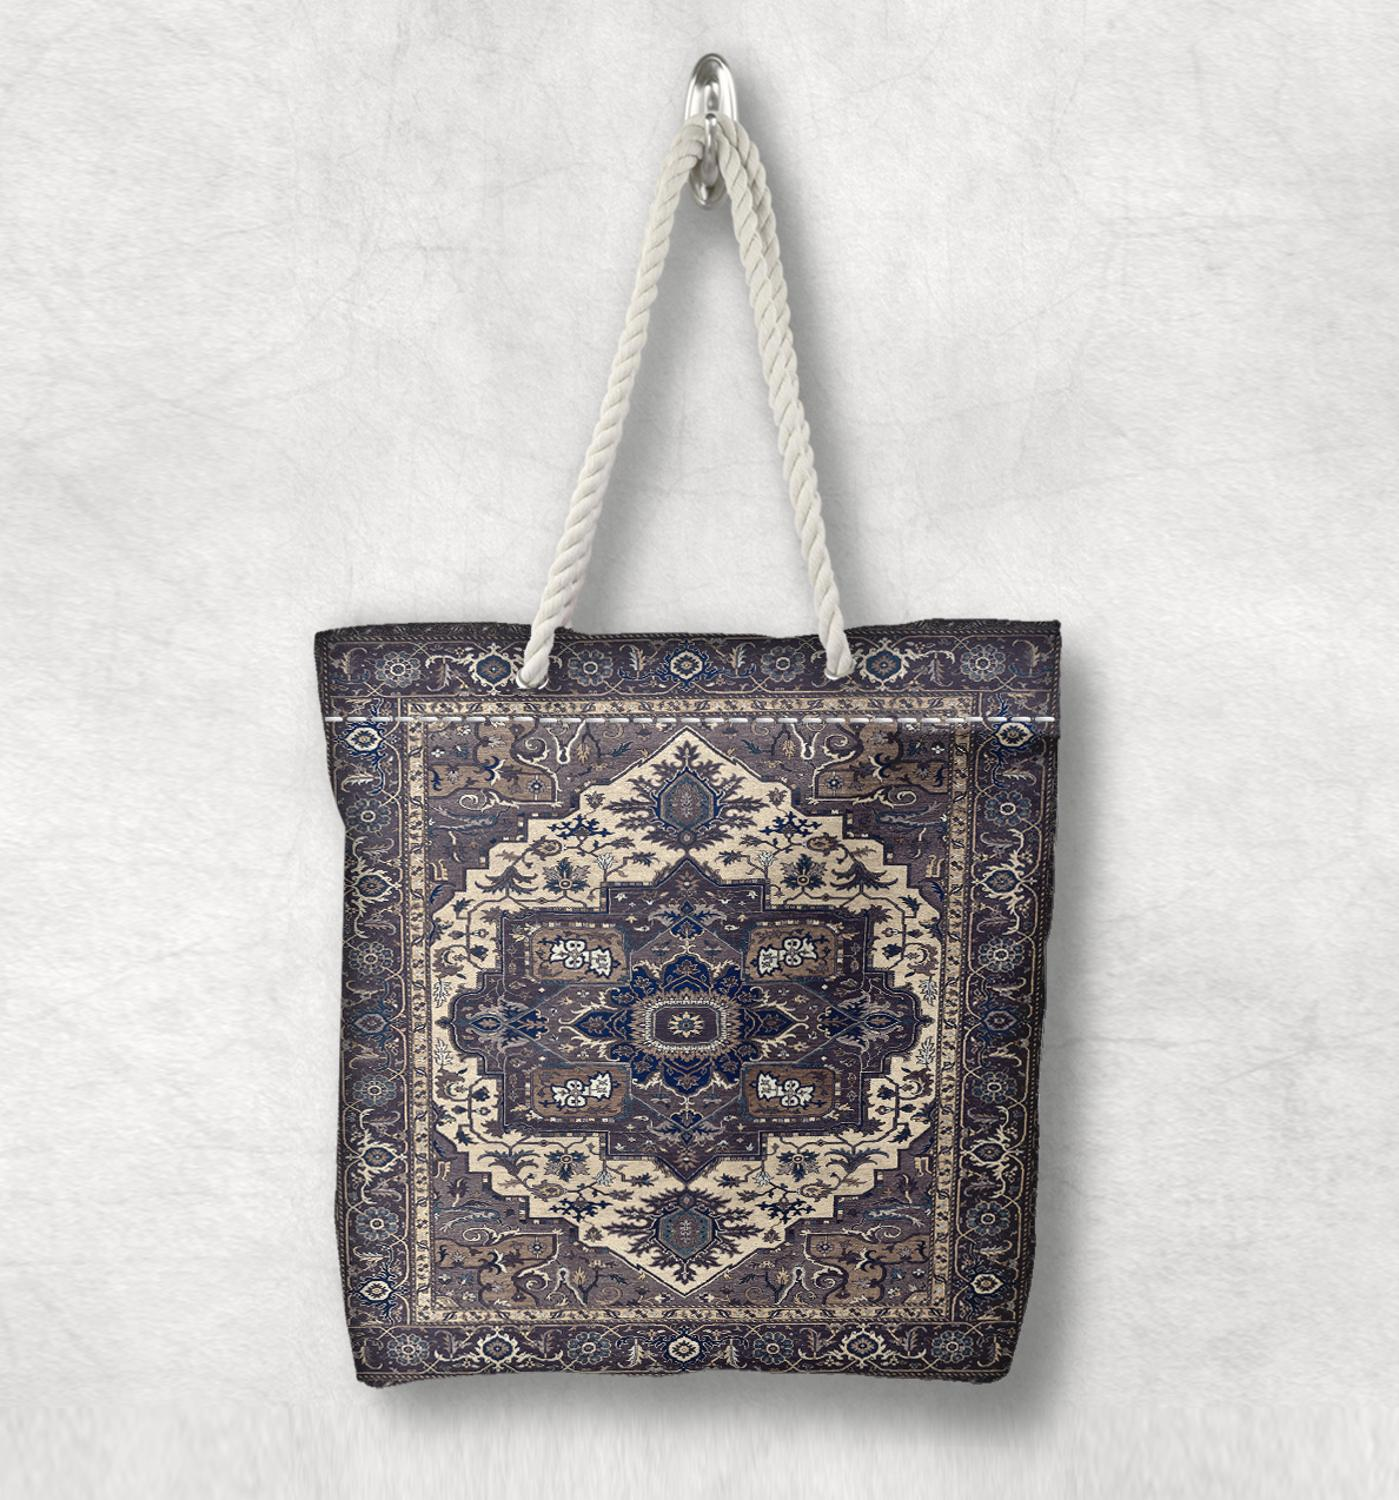 Else Brown Blue Ottoman Turkish Vintage New Fashion White Rope Handle Canvas Bag Cotton Canvas Zippered Tote Bag Shoulder Bag